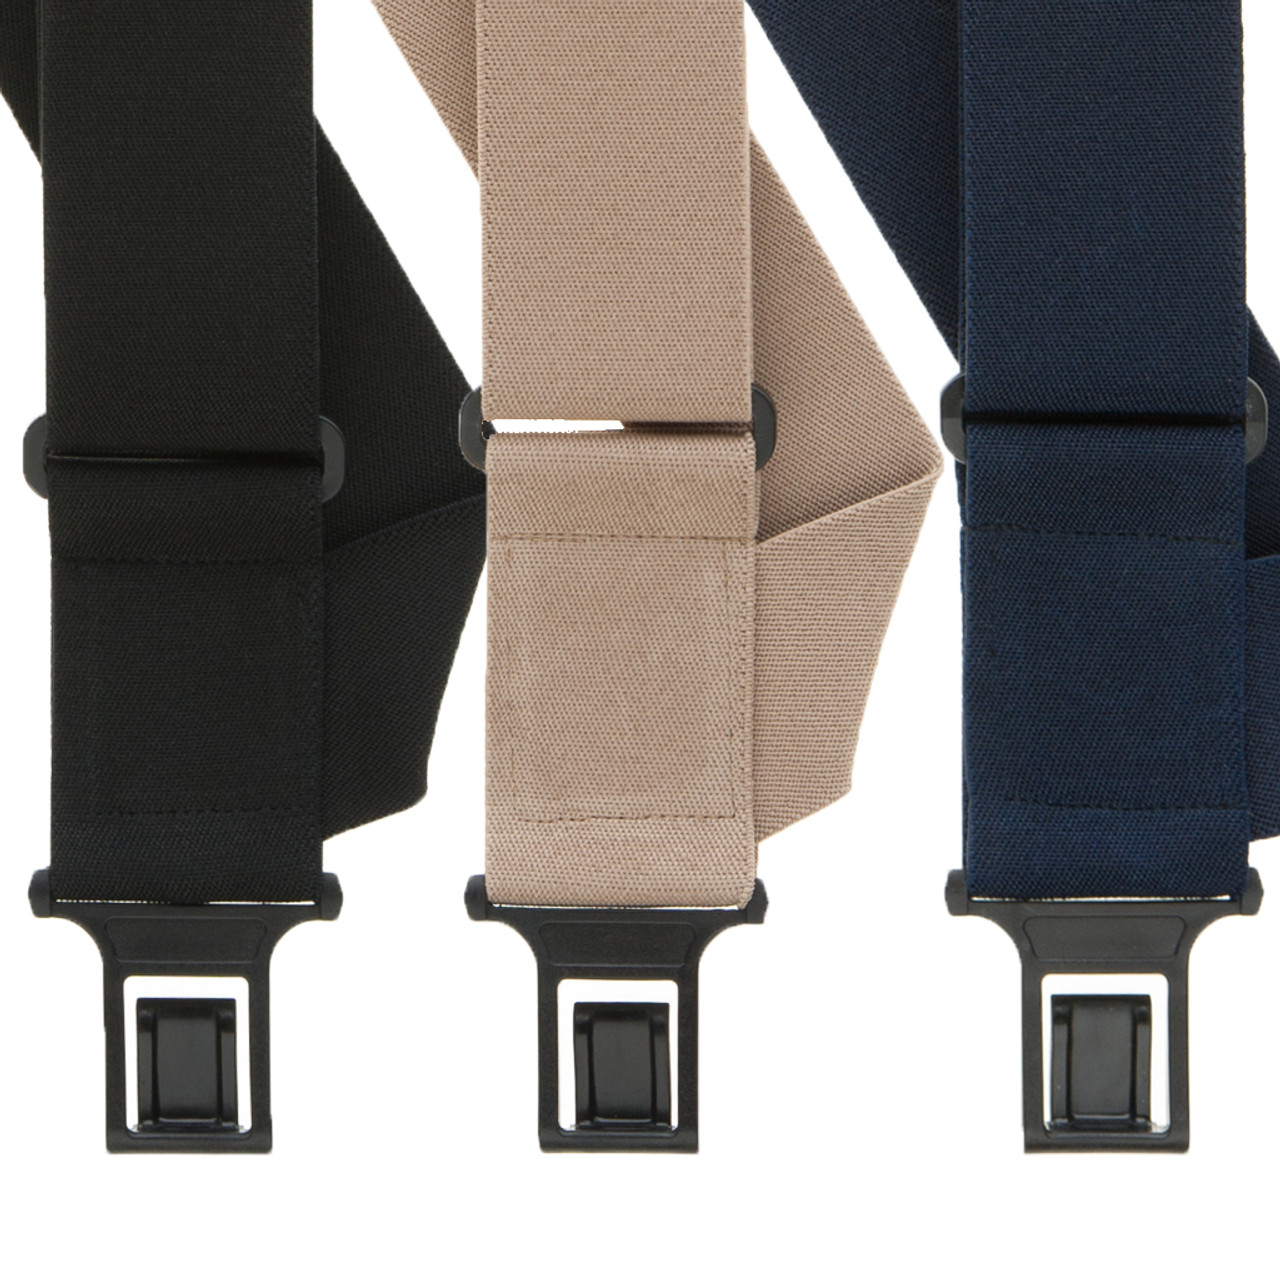 23e859fd7 Perry Suspenders - Front View - Side Clip All Colors